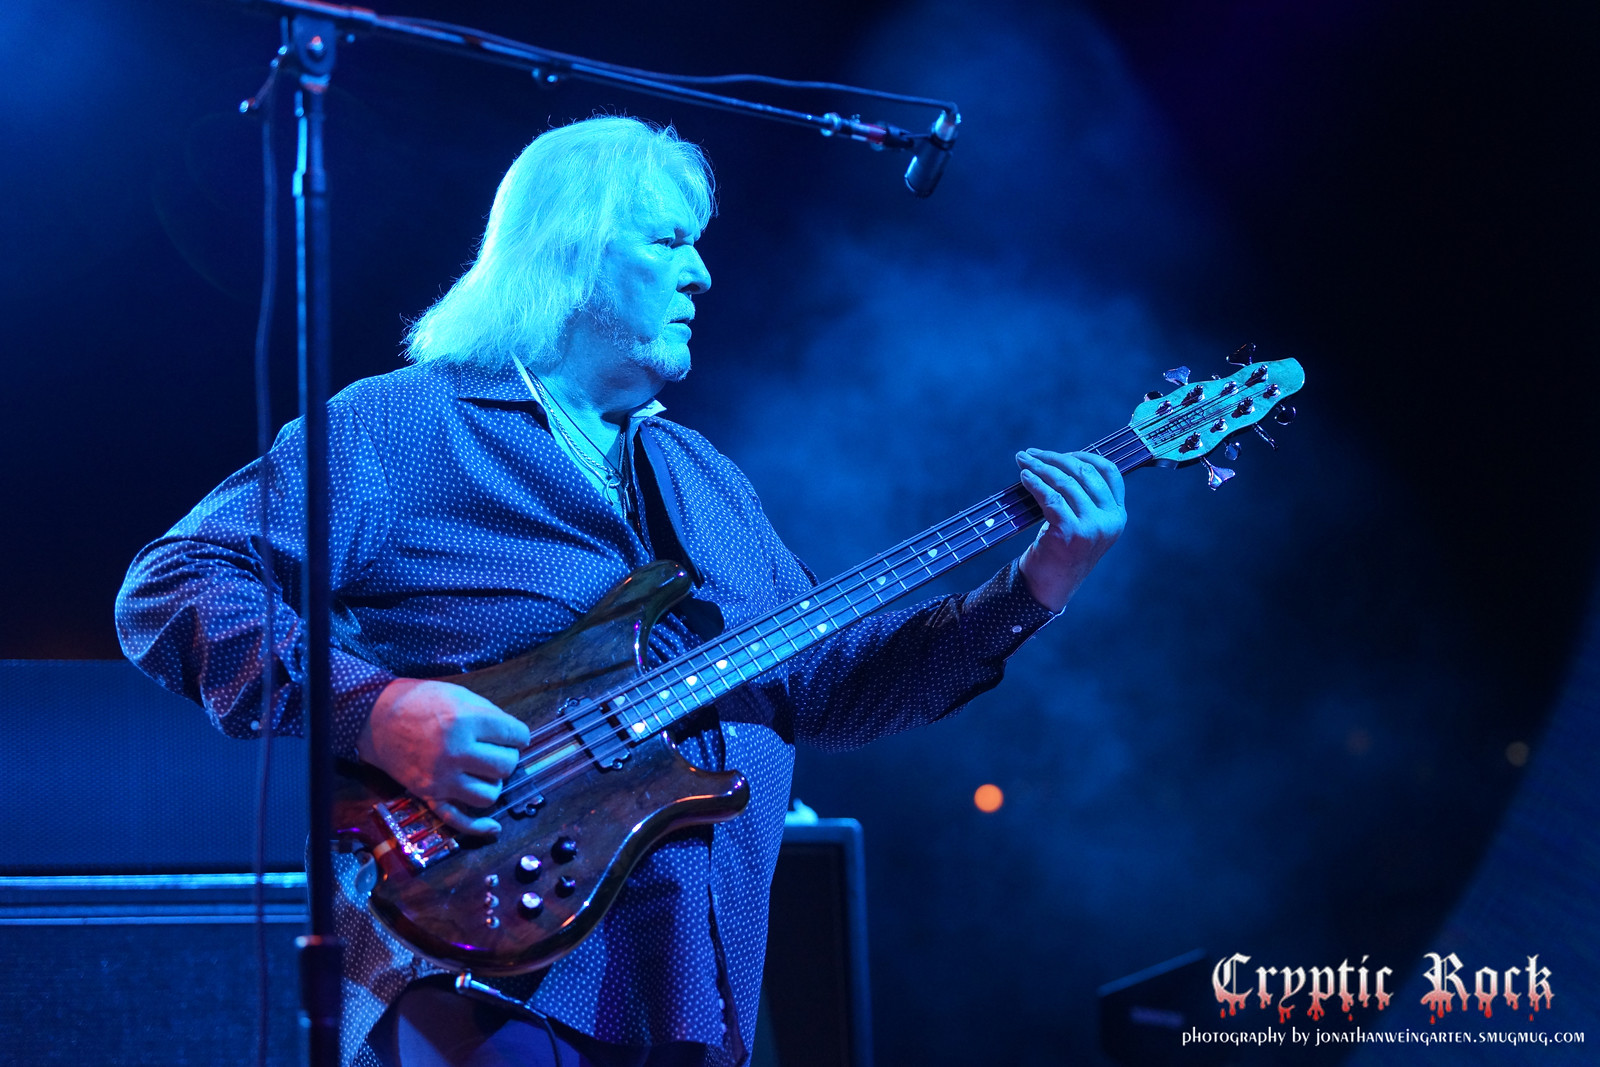 dsc01865 x3 - Remembering Chris Squire of YES - Bass Innovator & Legend